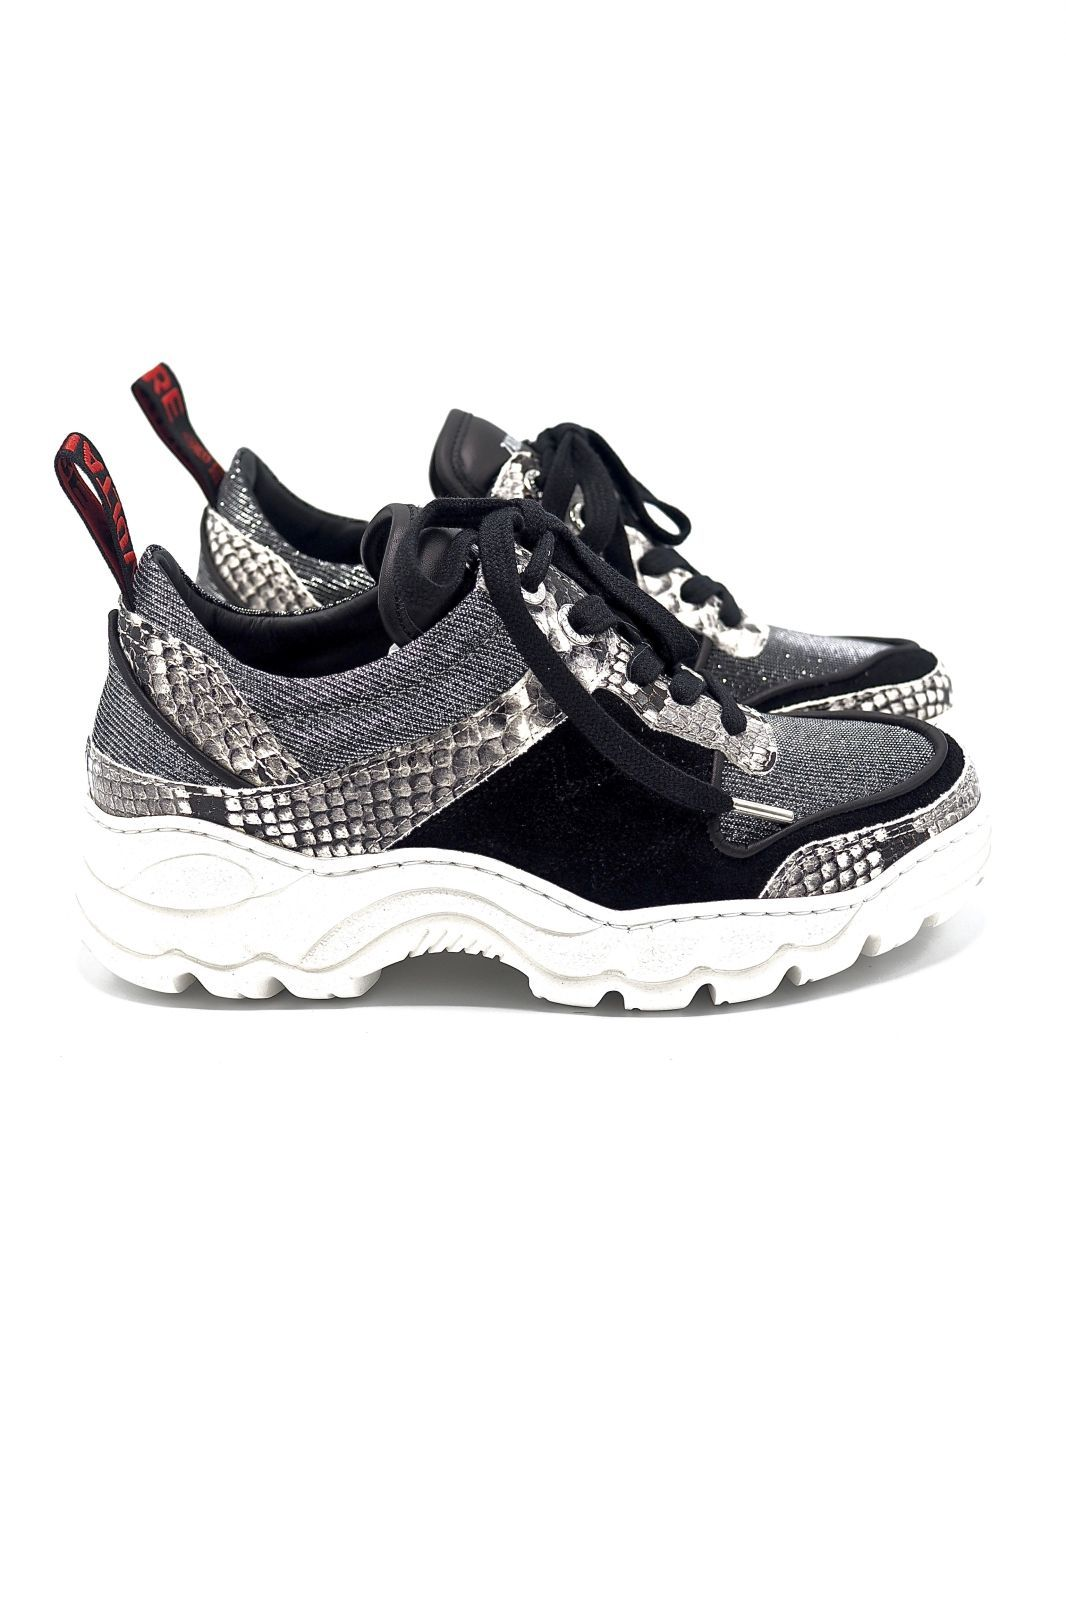 Zadig accessoires basket bas Noir femmes (Z&V acc-Sneakers sem. technic - BLAZE cuir/pyton black&silver) - Marine | Much more than shoes